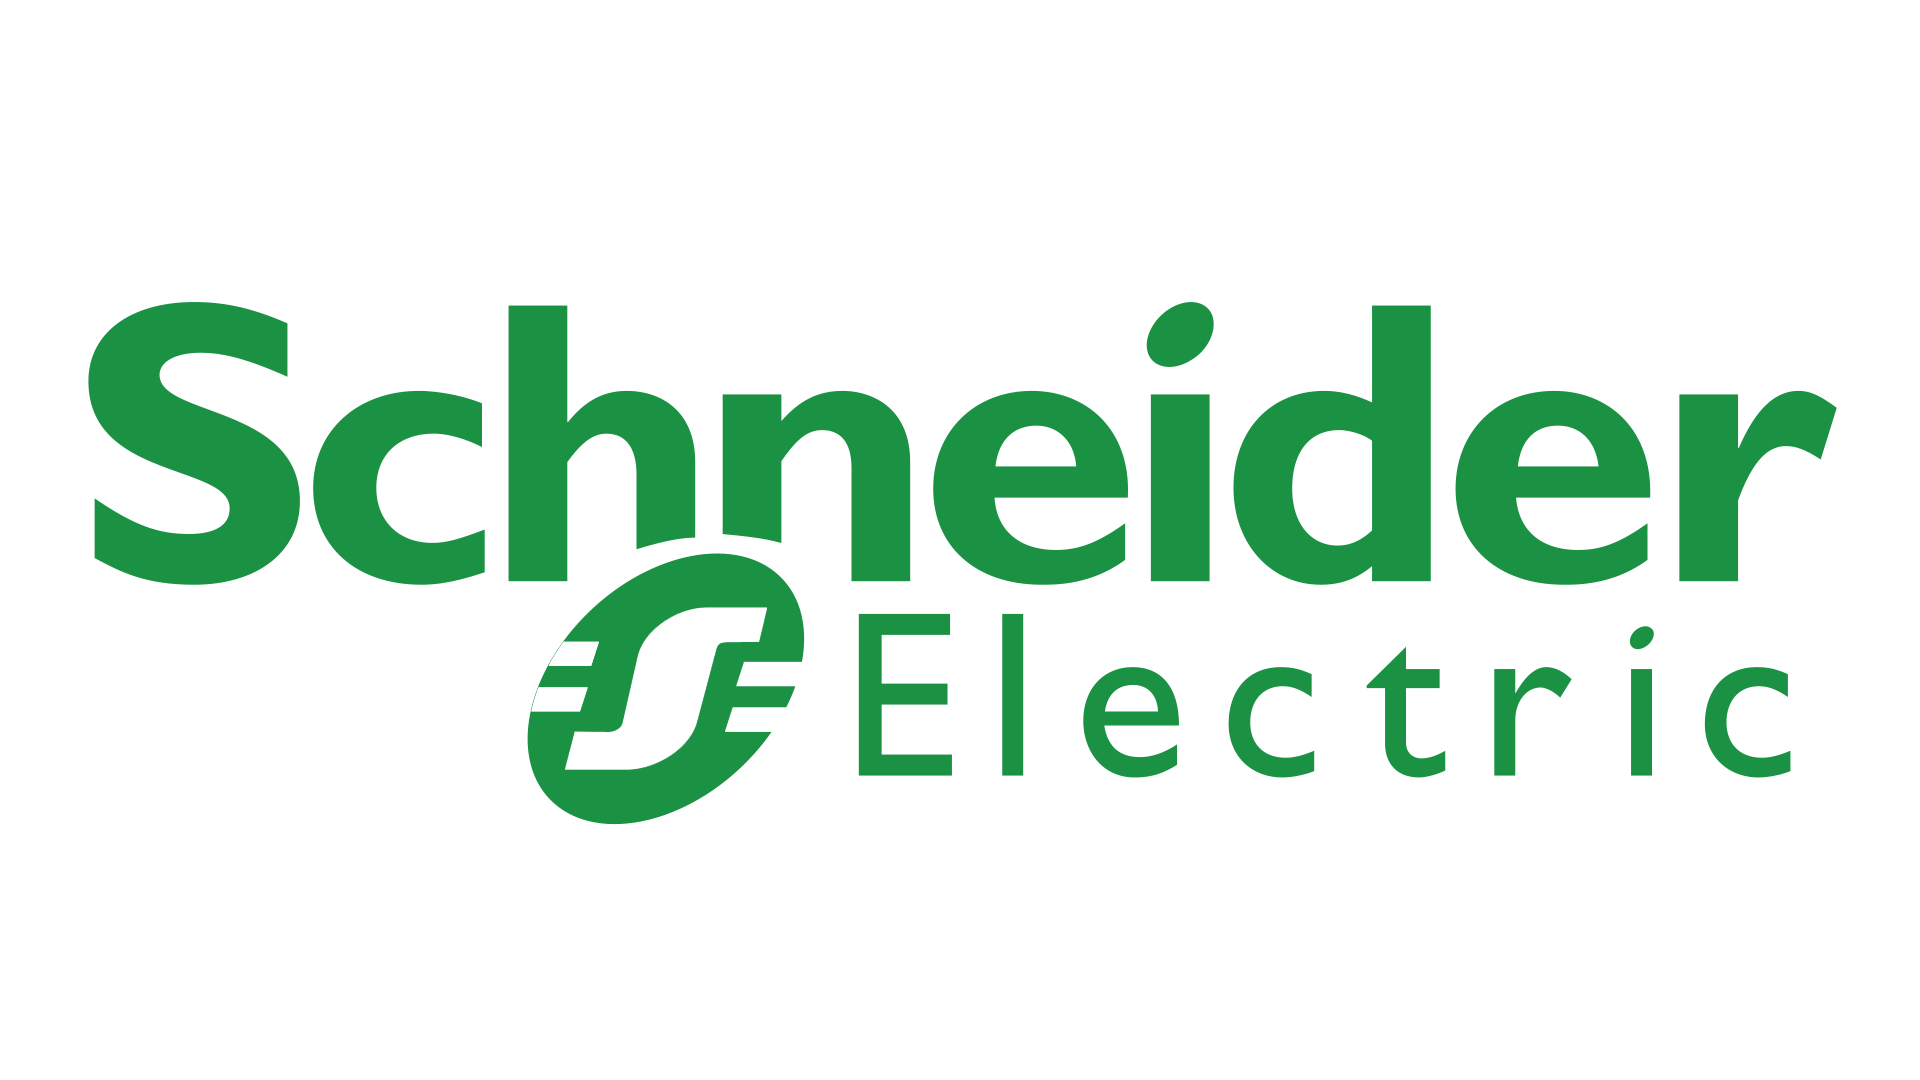 Scheneider Electric